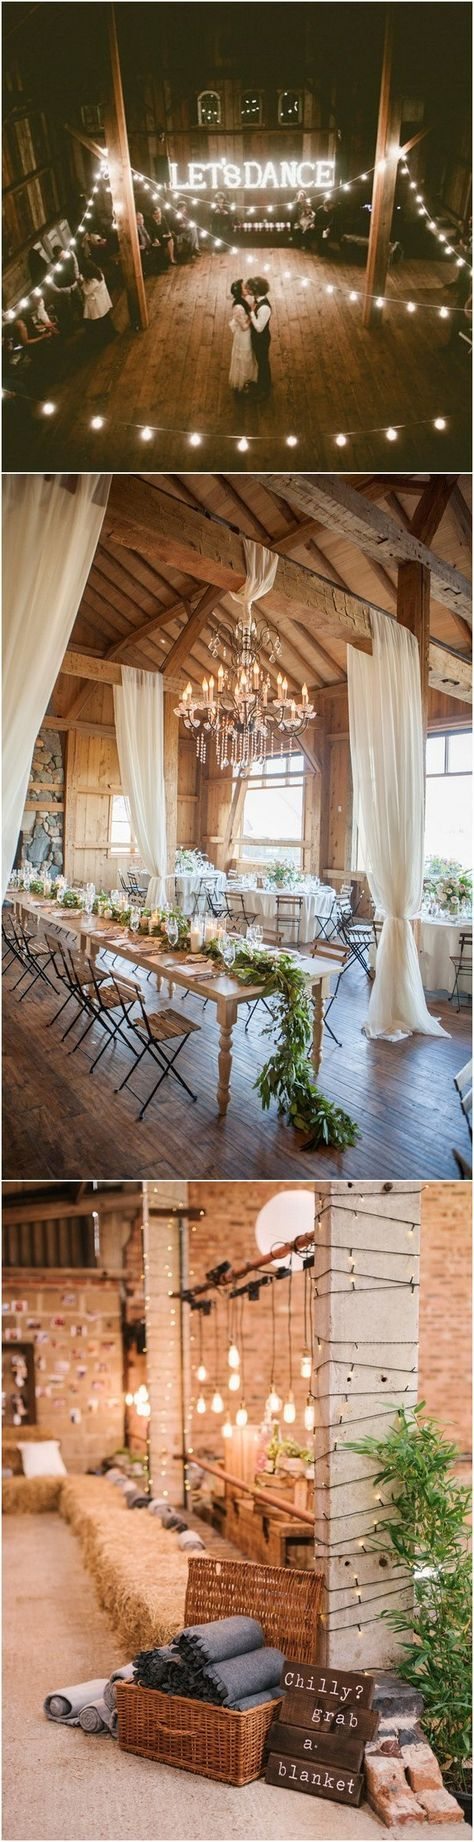 rustic barn wedding decoration ideas